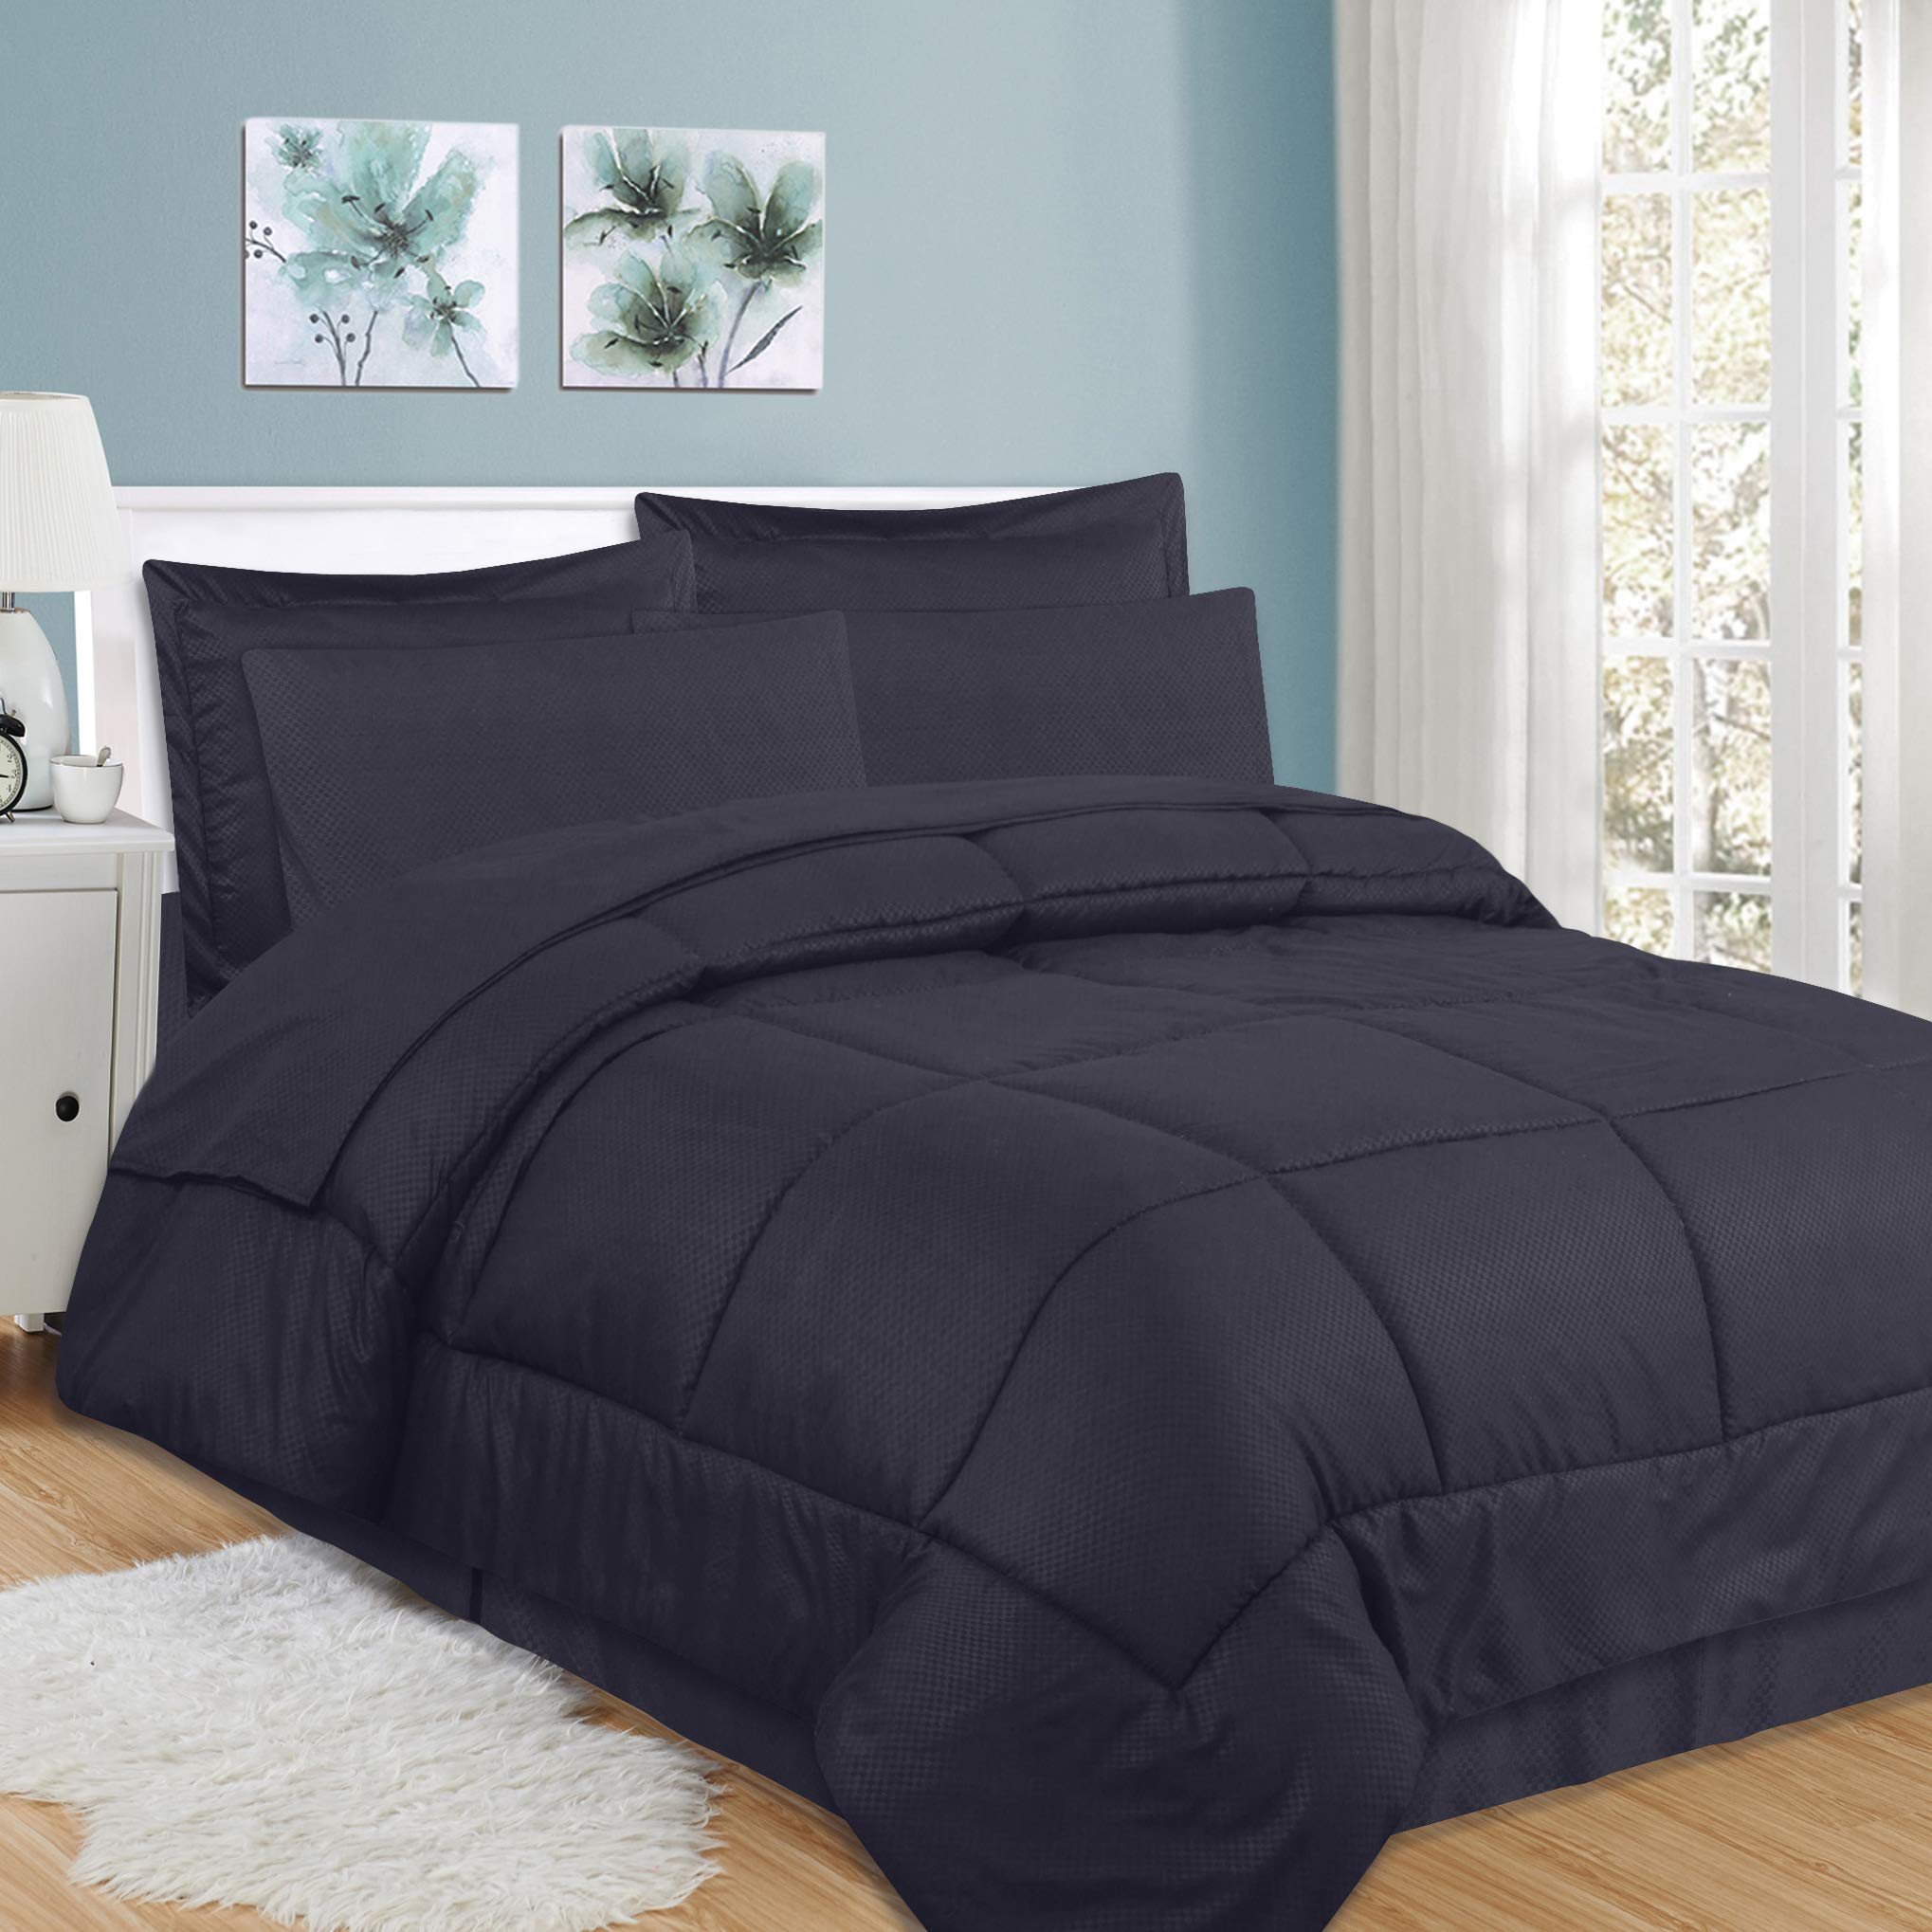 Sweet Home Collection 8 Piece Comforter Set Bag Design Bed Sheets 2 Pillowcases 2 Shams Down Alternative All Season Warmth Queen Checkered Navy Buy Online In Dominica At Dominica Desertcart Com Productid 122765534